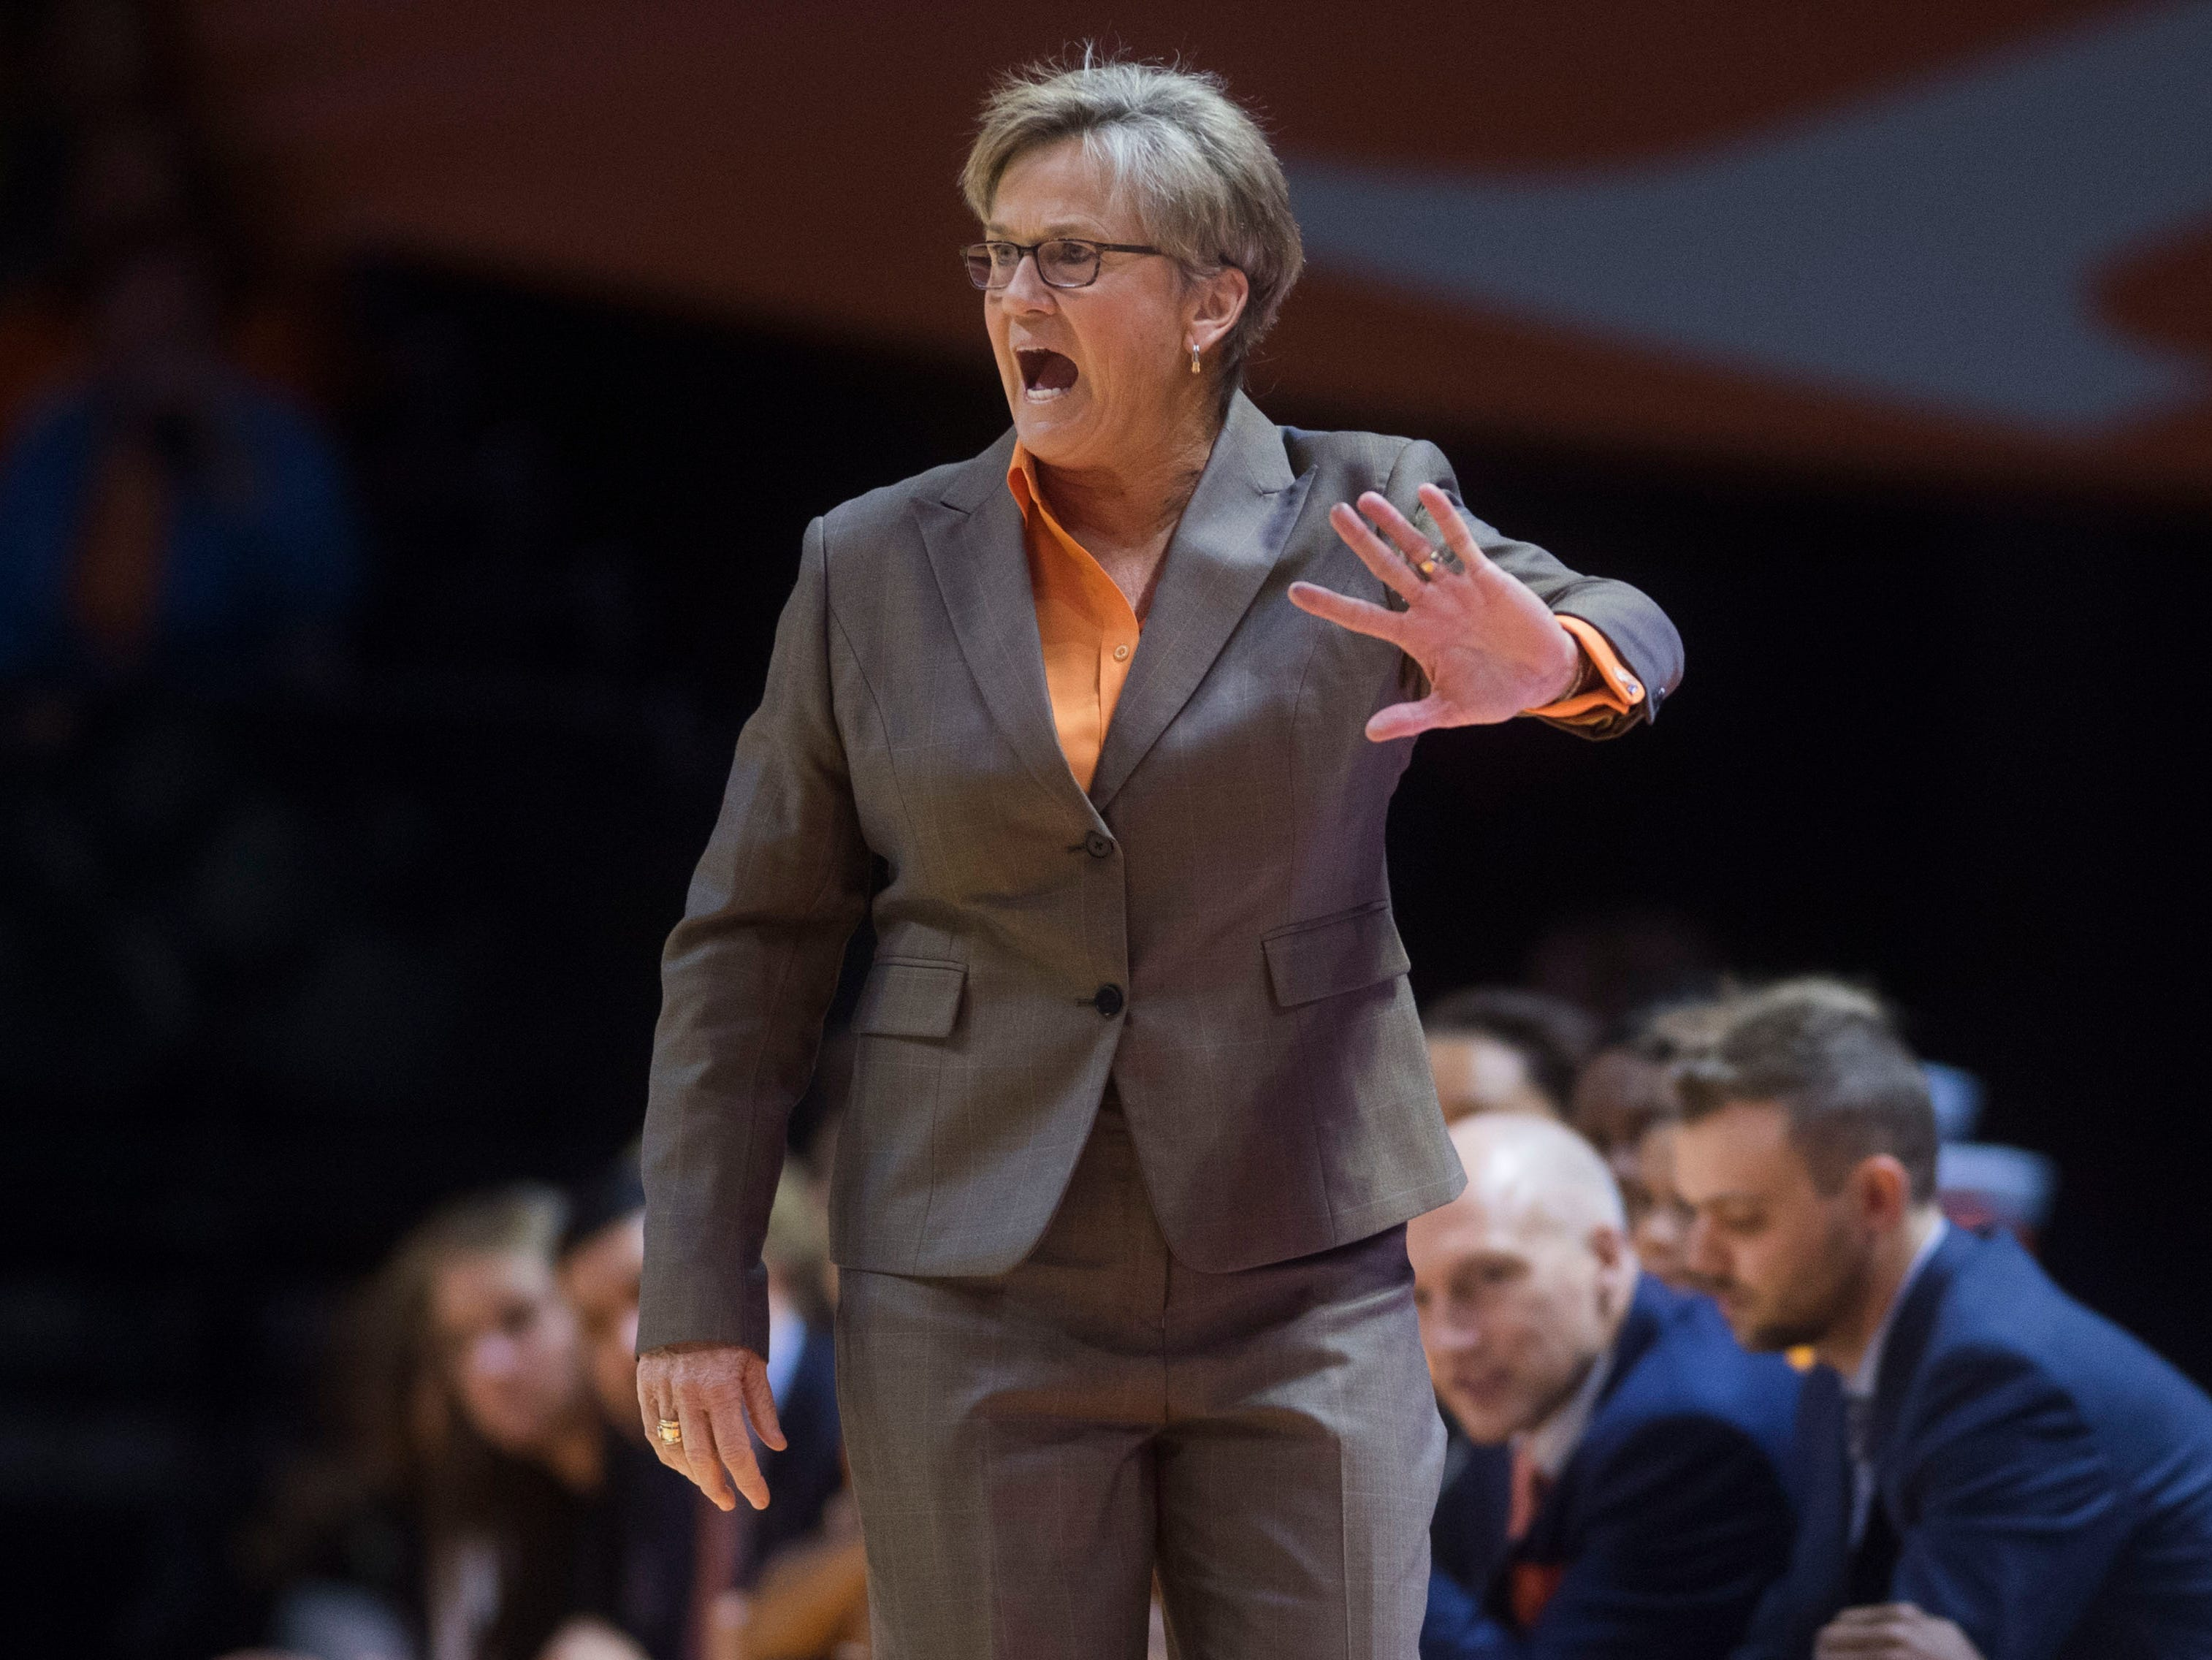 Tennessee head coach Holly Warlick yells to the court during a women's basketball game between Tennessee and Stanford at Thompson-Boling Arena Tuesday, Dec. 18, 2018.